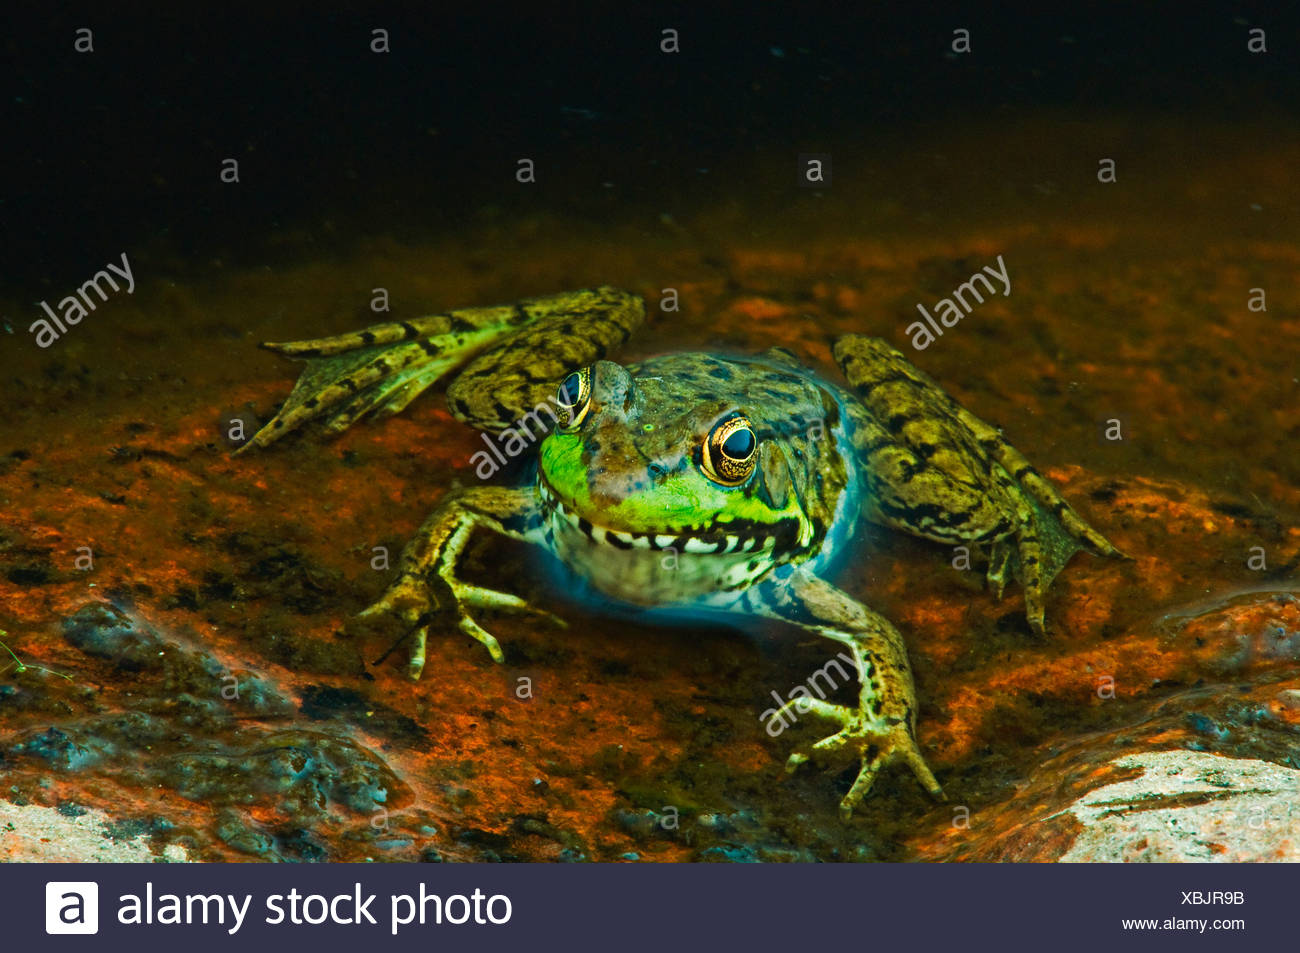 Close-up of green frog (Rana clamitans) at edge of pond, Killarney Provincial Park, Ontario, Canada - Stock Image